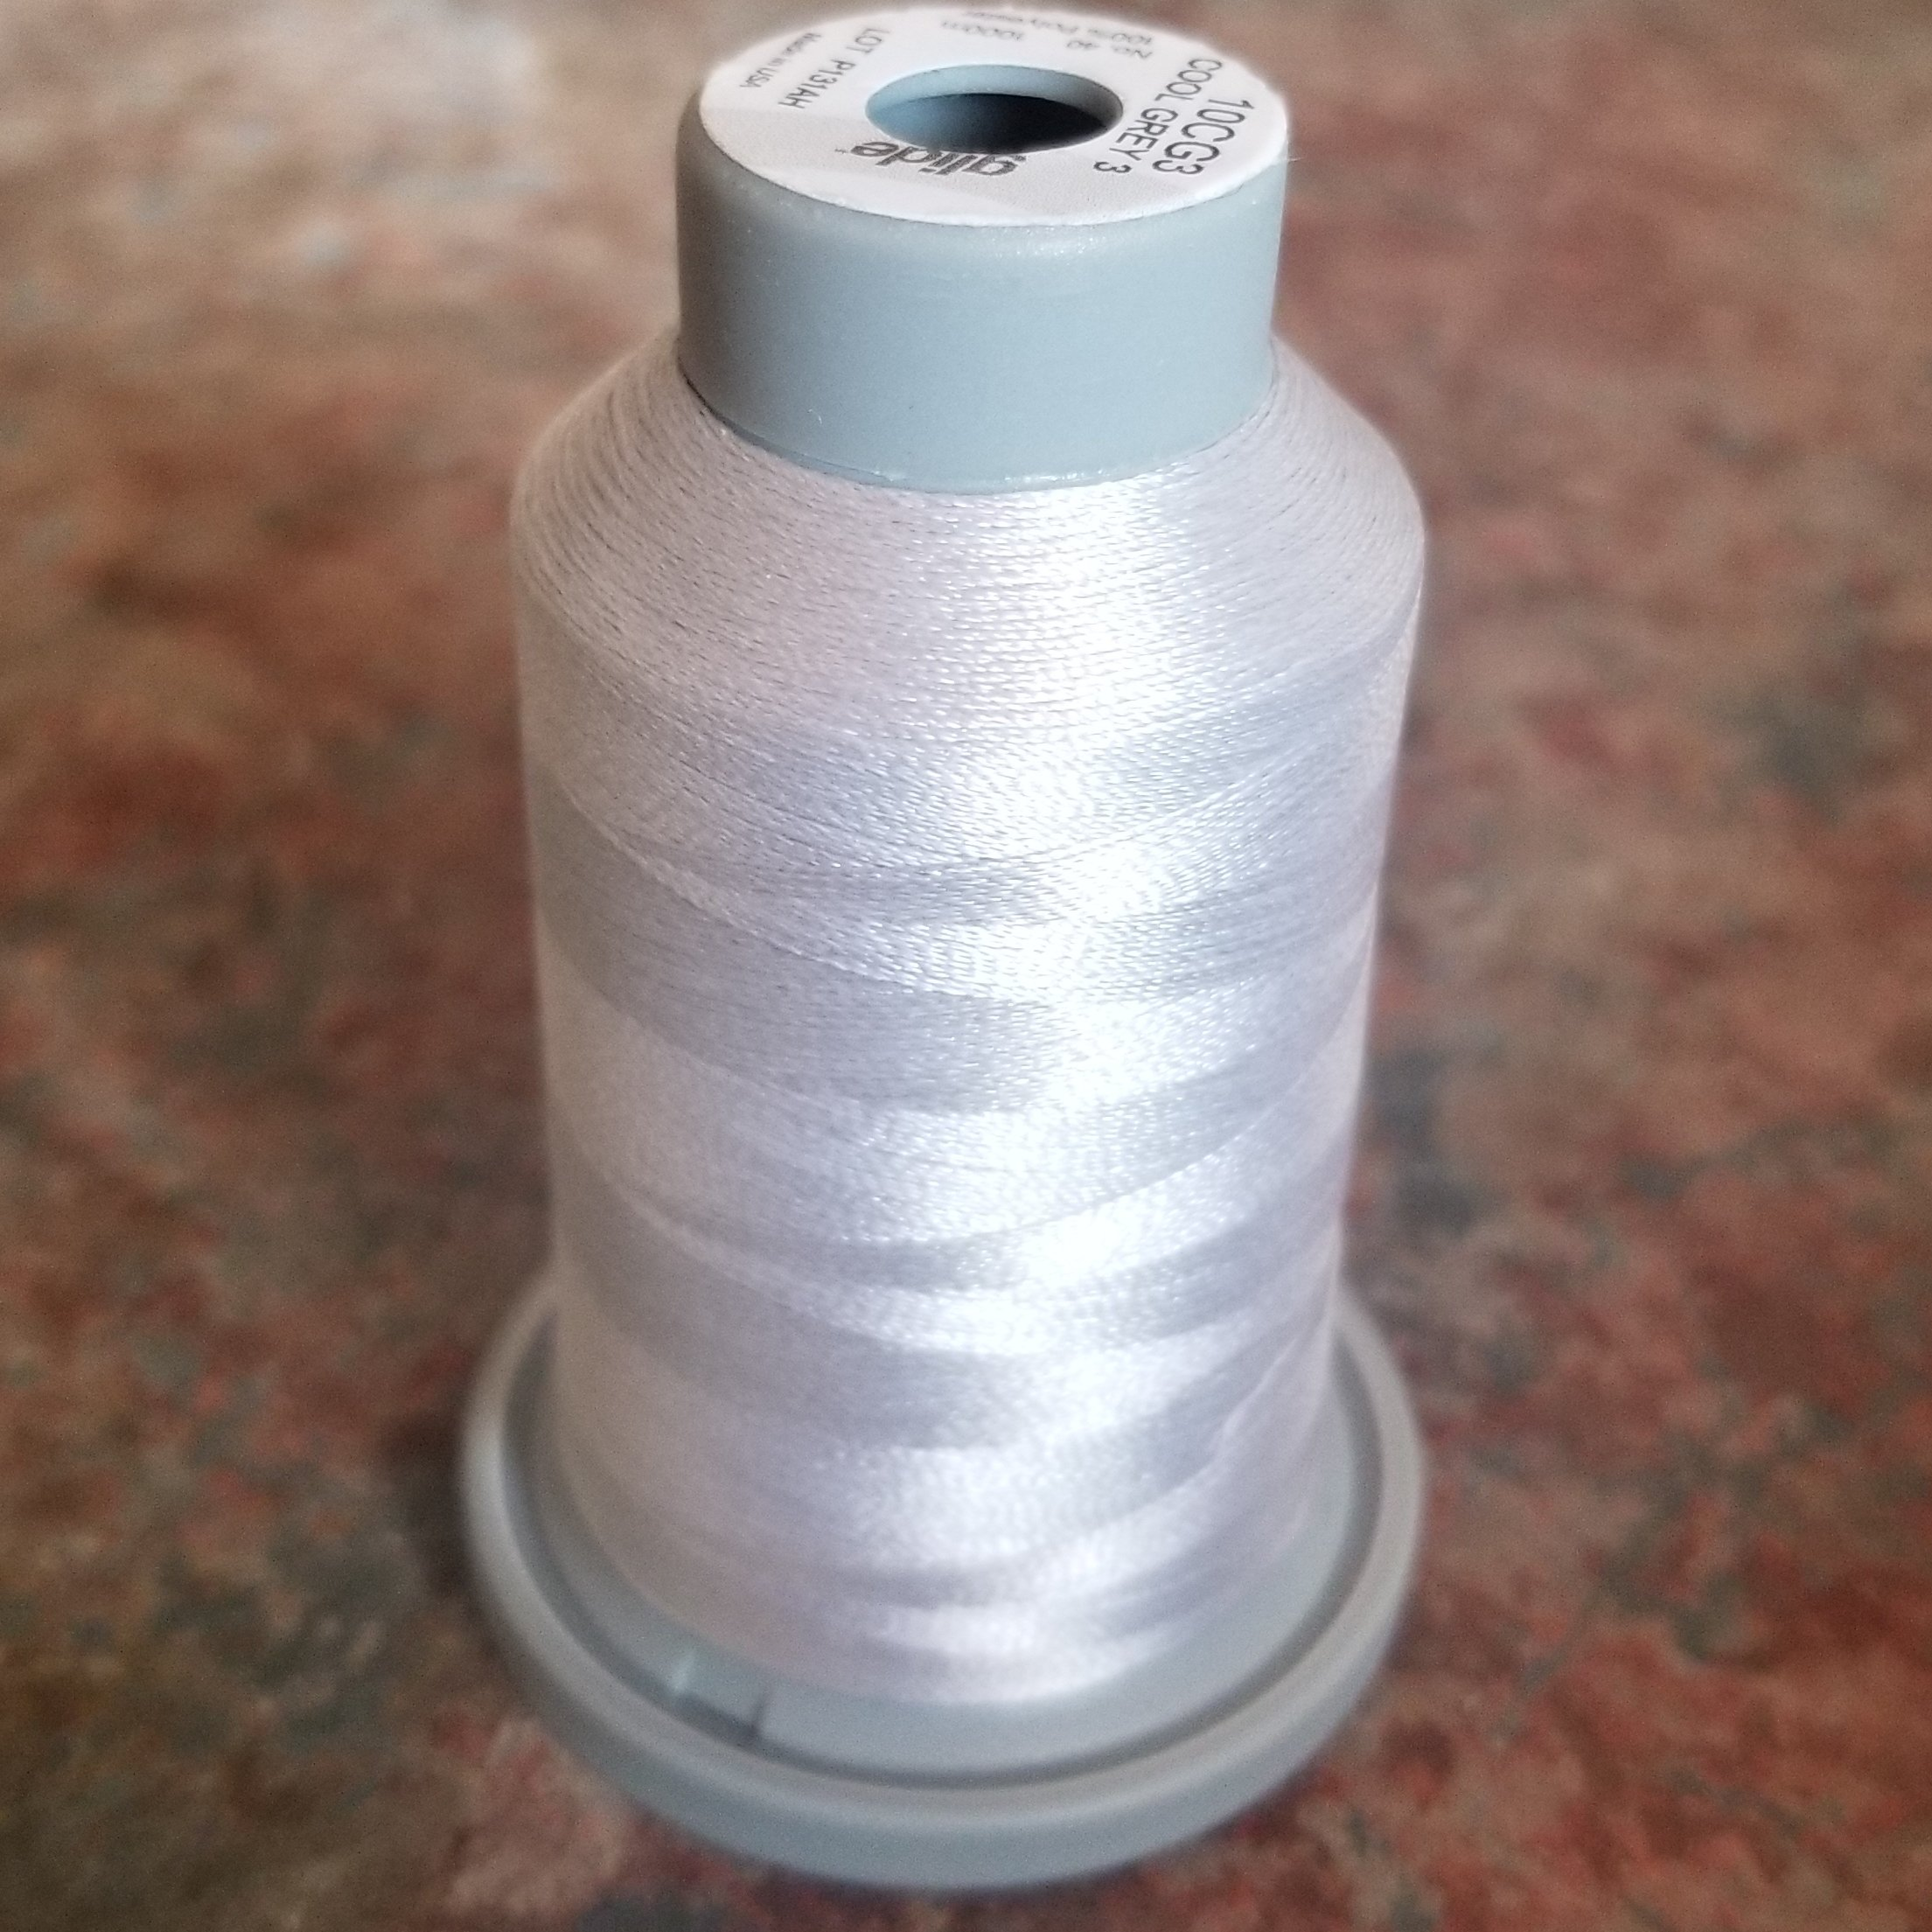 Cool Gray #3 Glide Thread